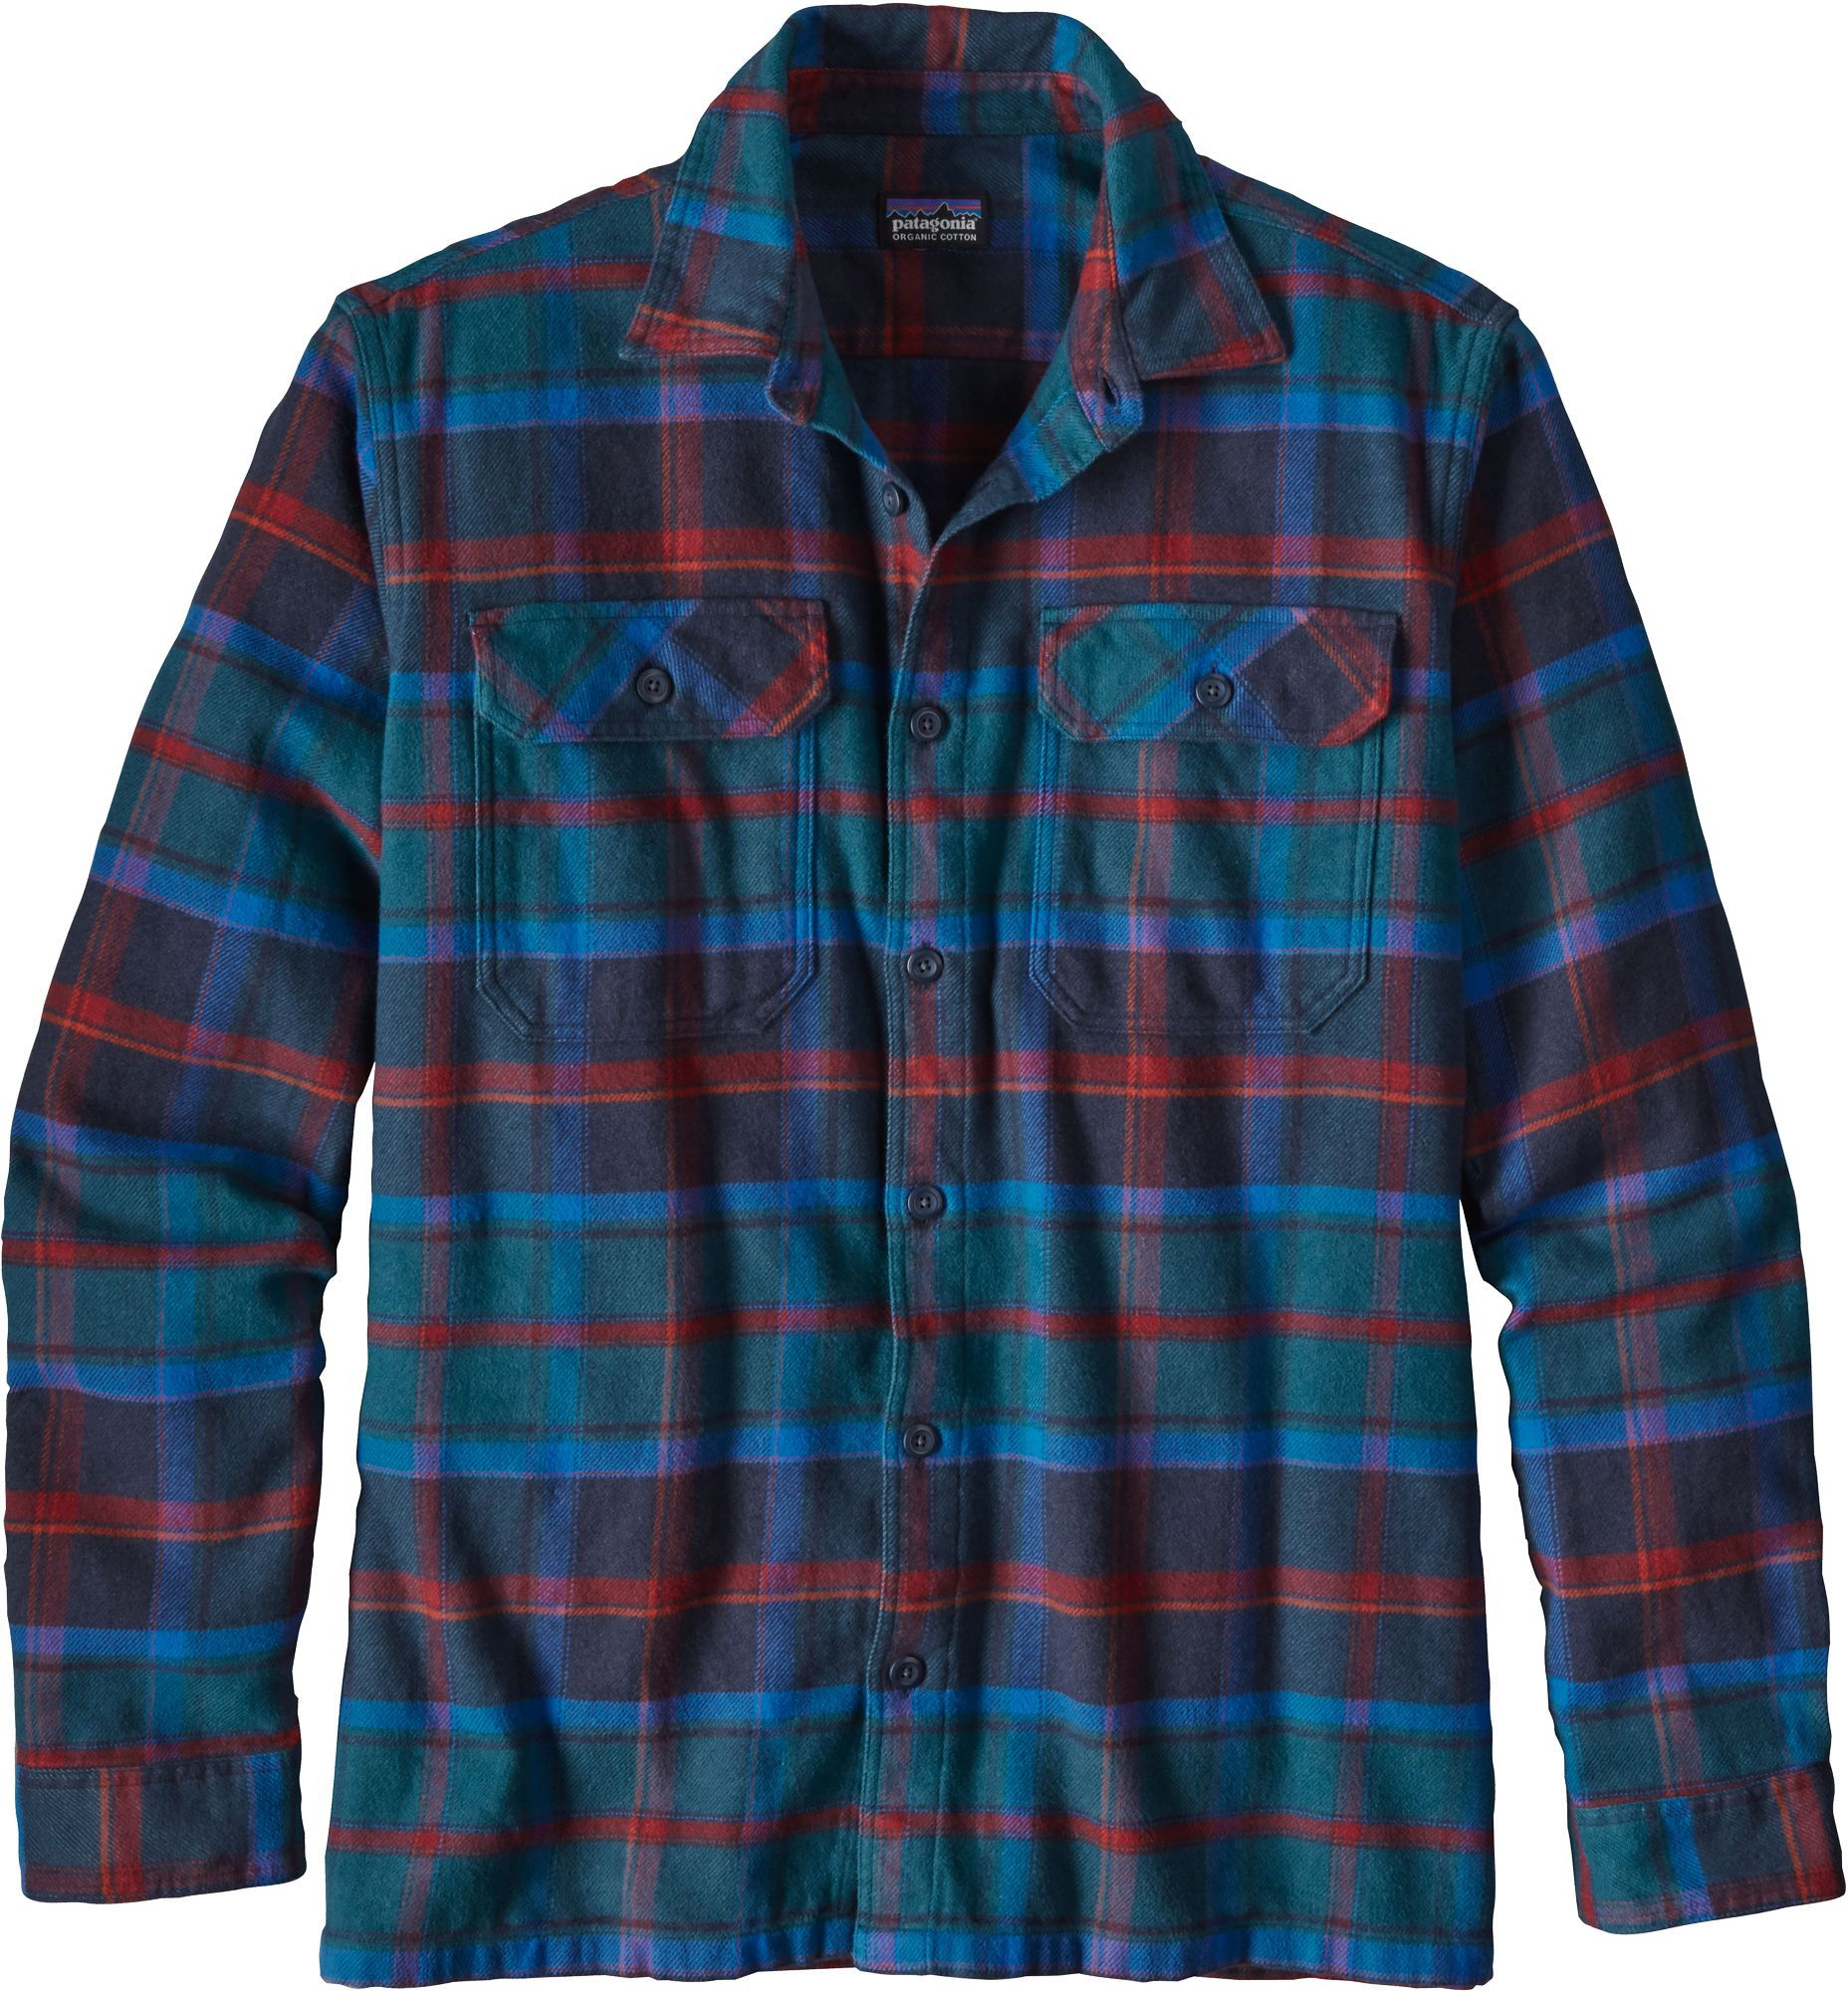 Pin by Tst on Mens casual outfits in 2019 | Flannel shirt